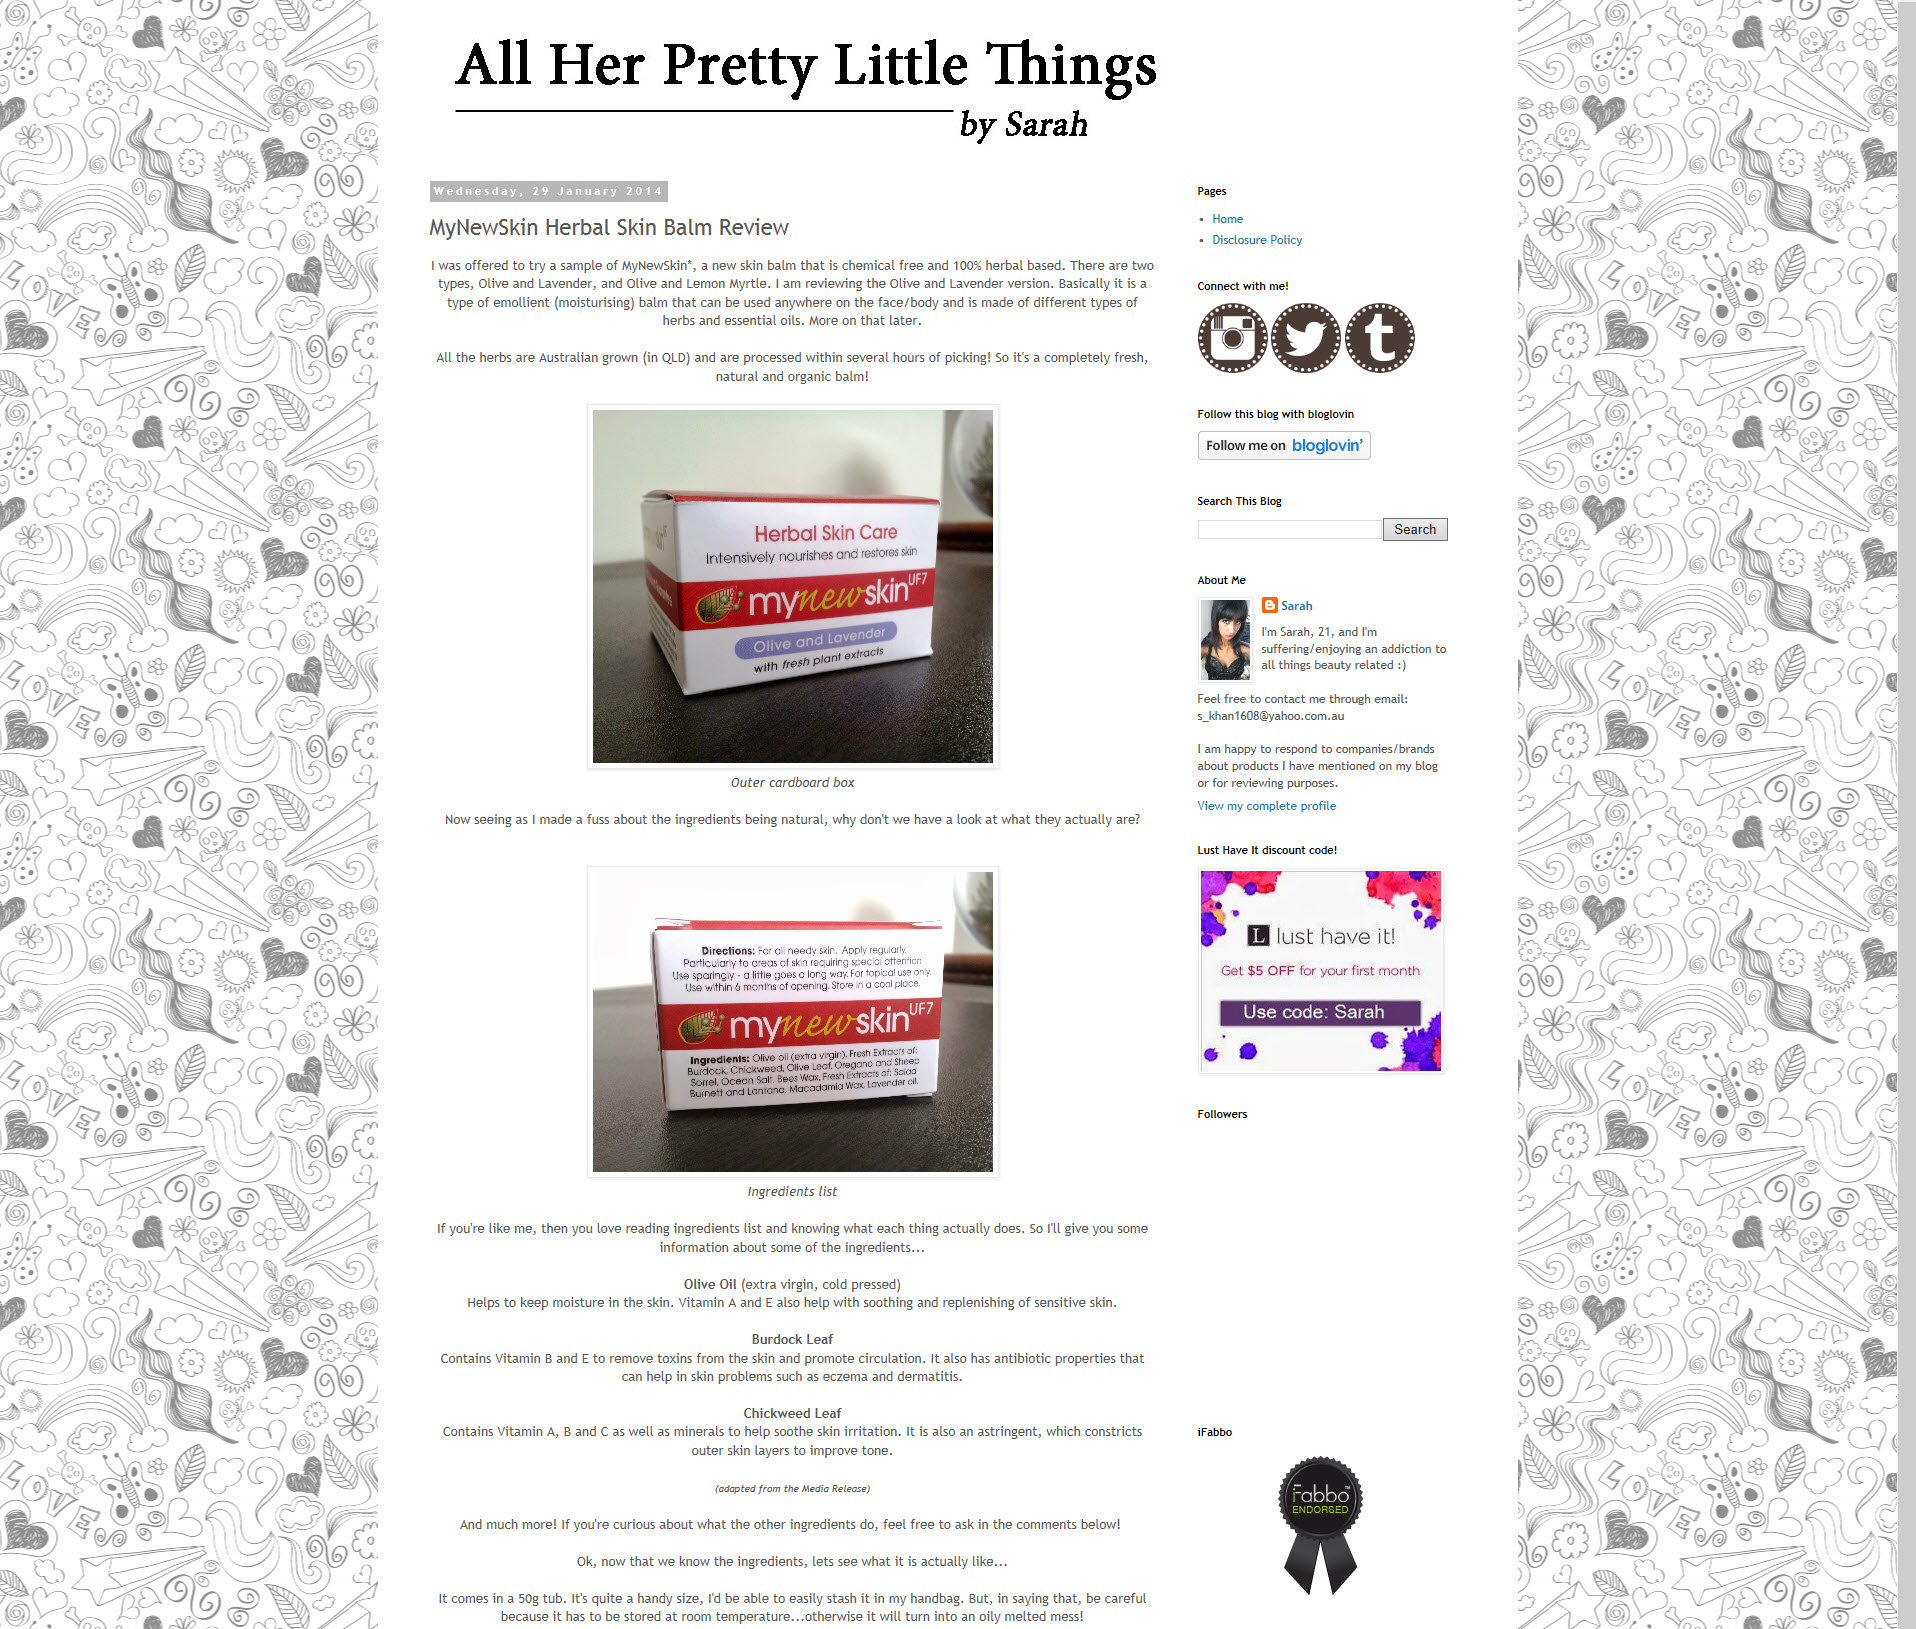 All Her Pretty Little Things, January 2014 - 1.jpg